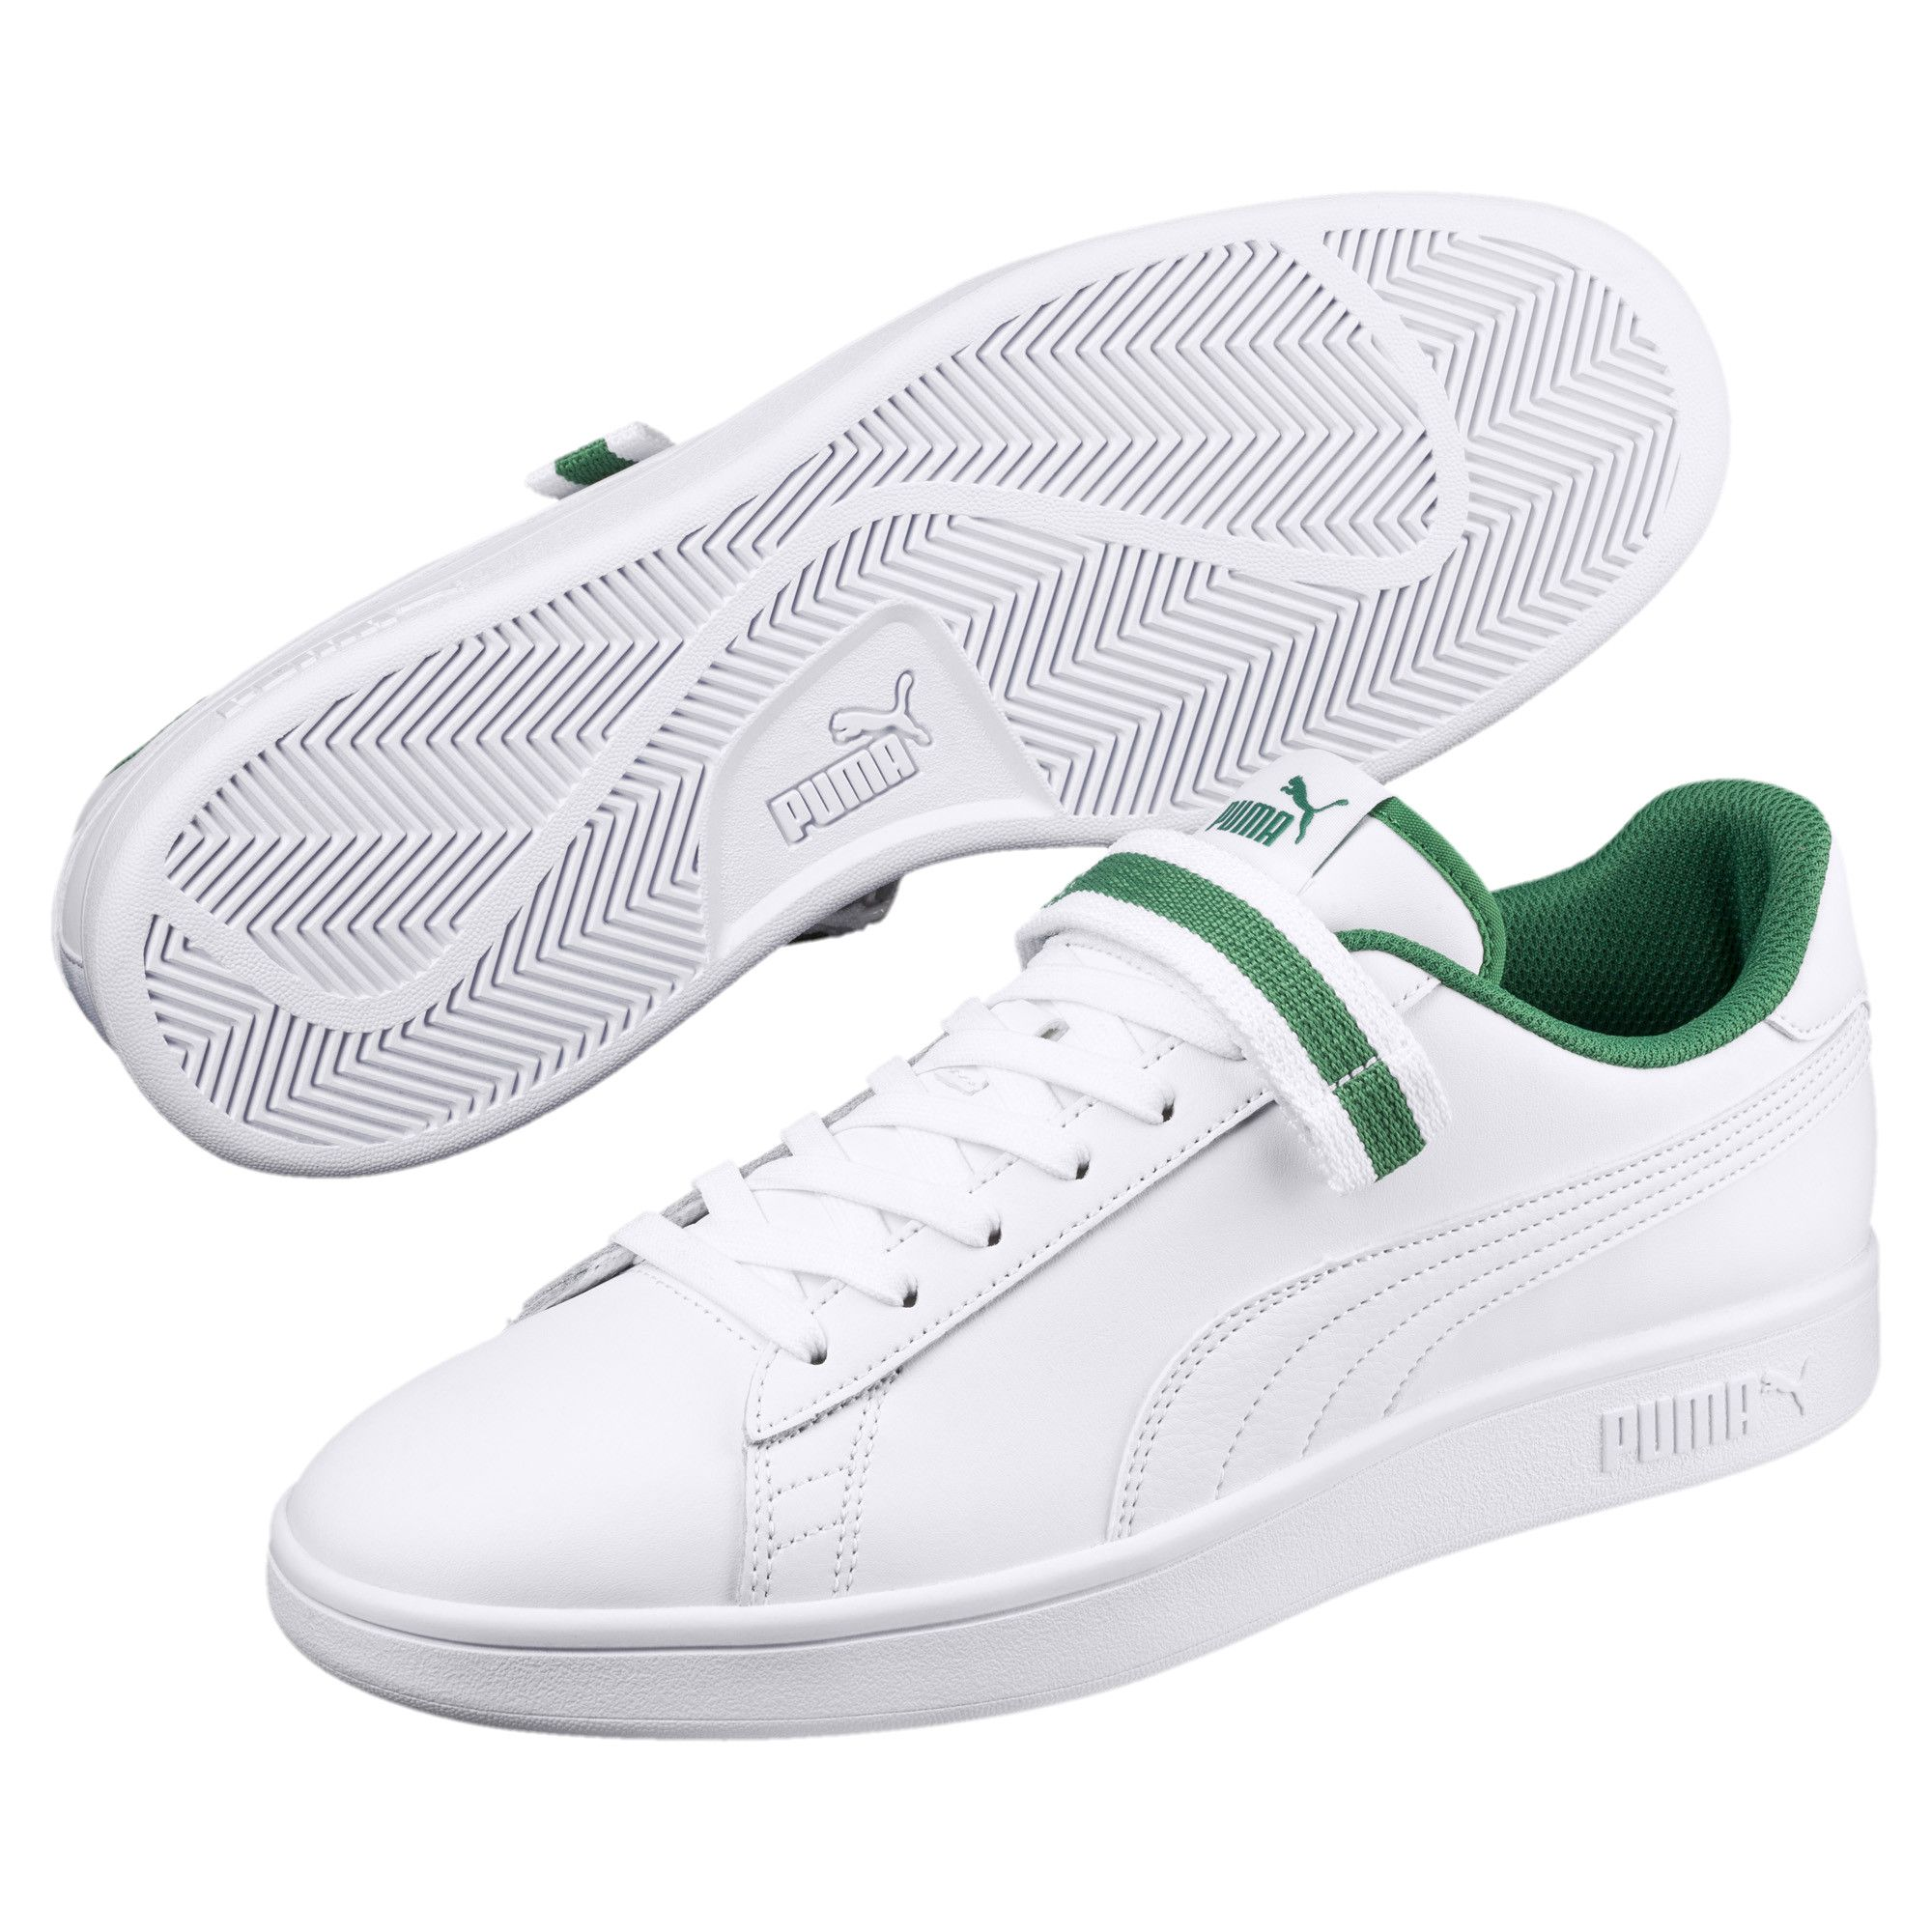 Puma Smash v2 V Fresh Sneakers | Puma W Puma W Amazon Green